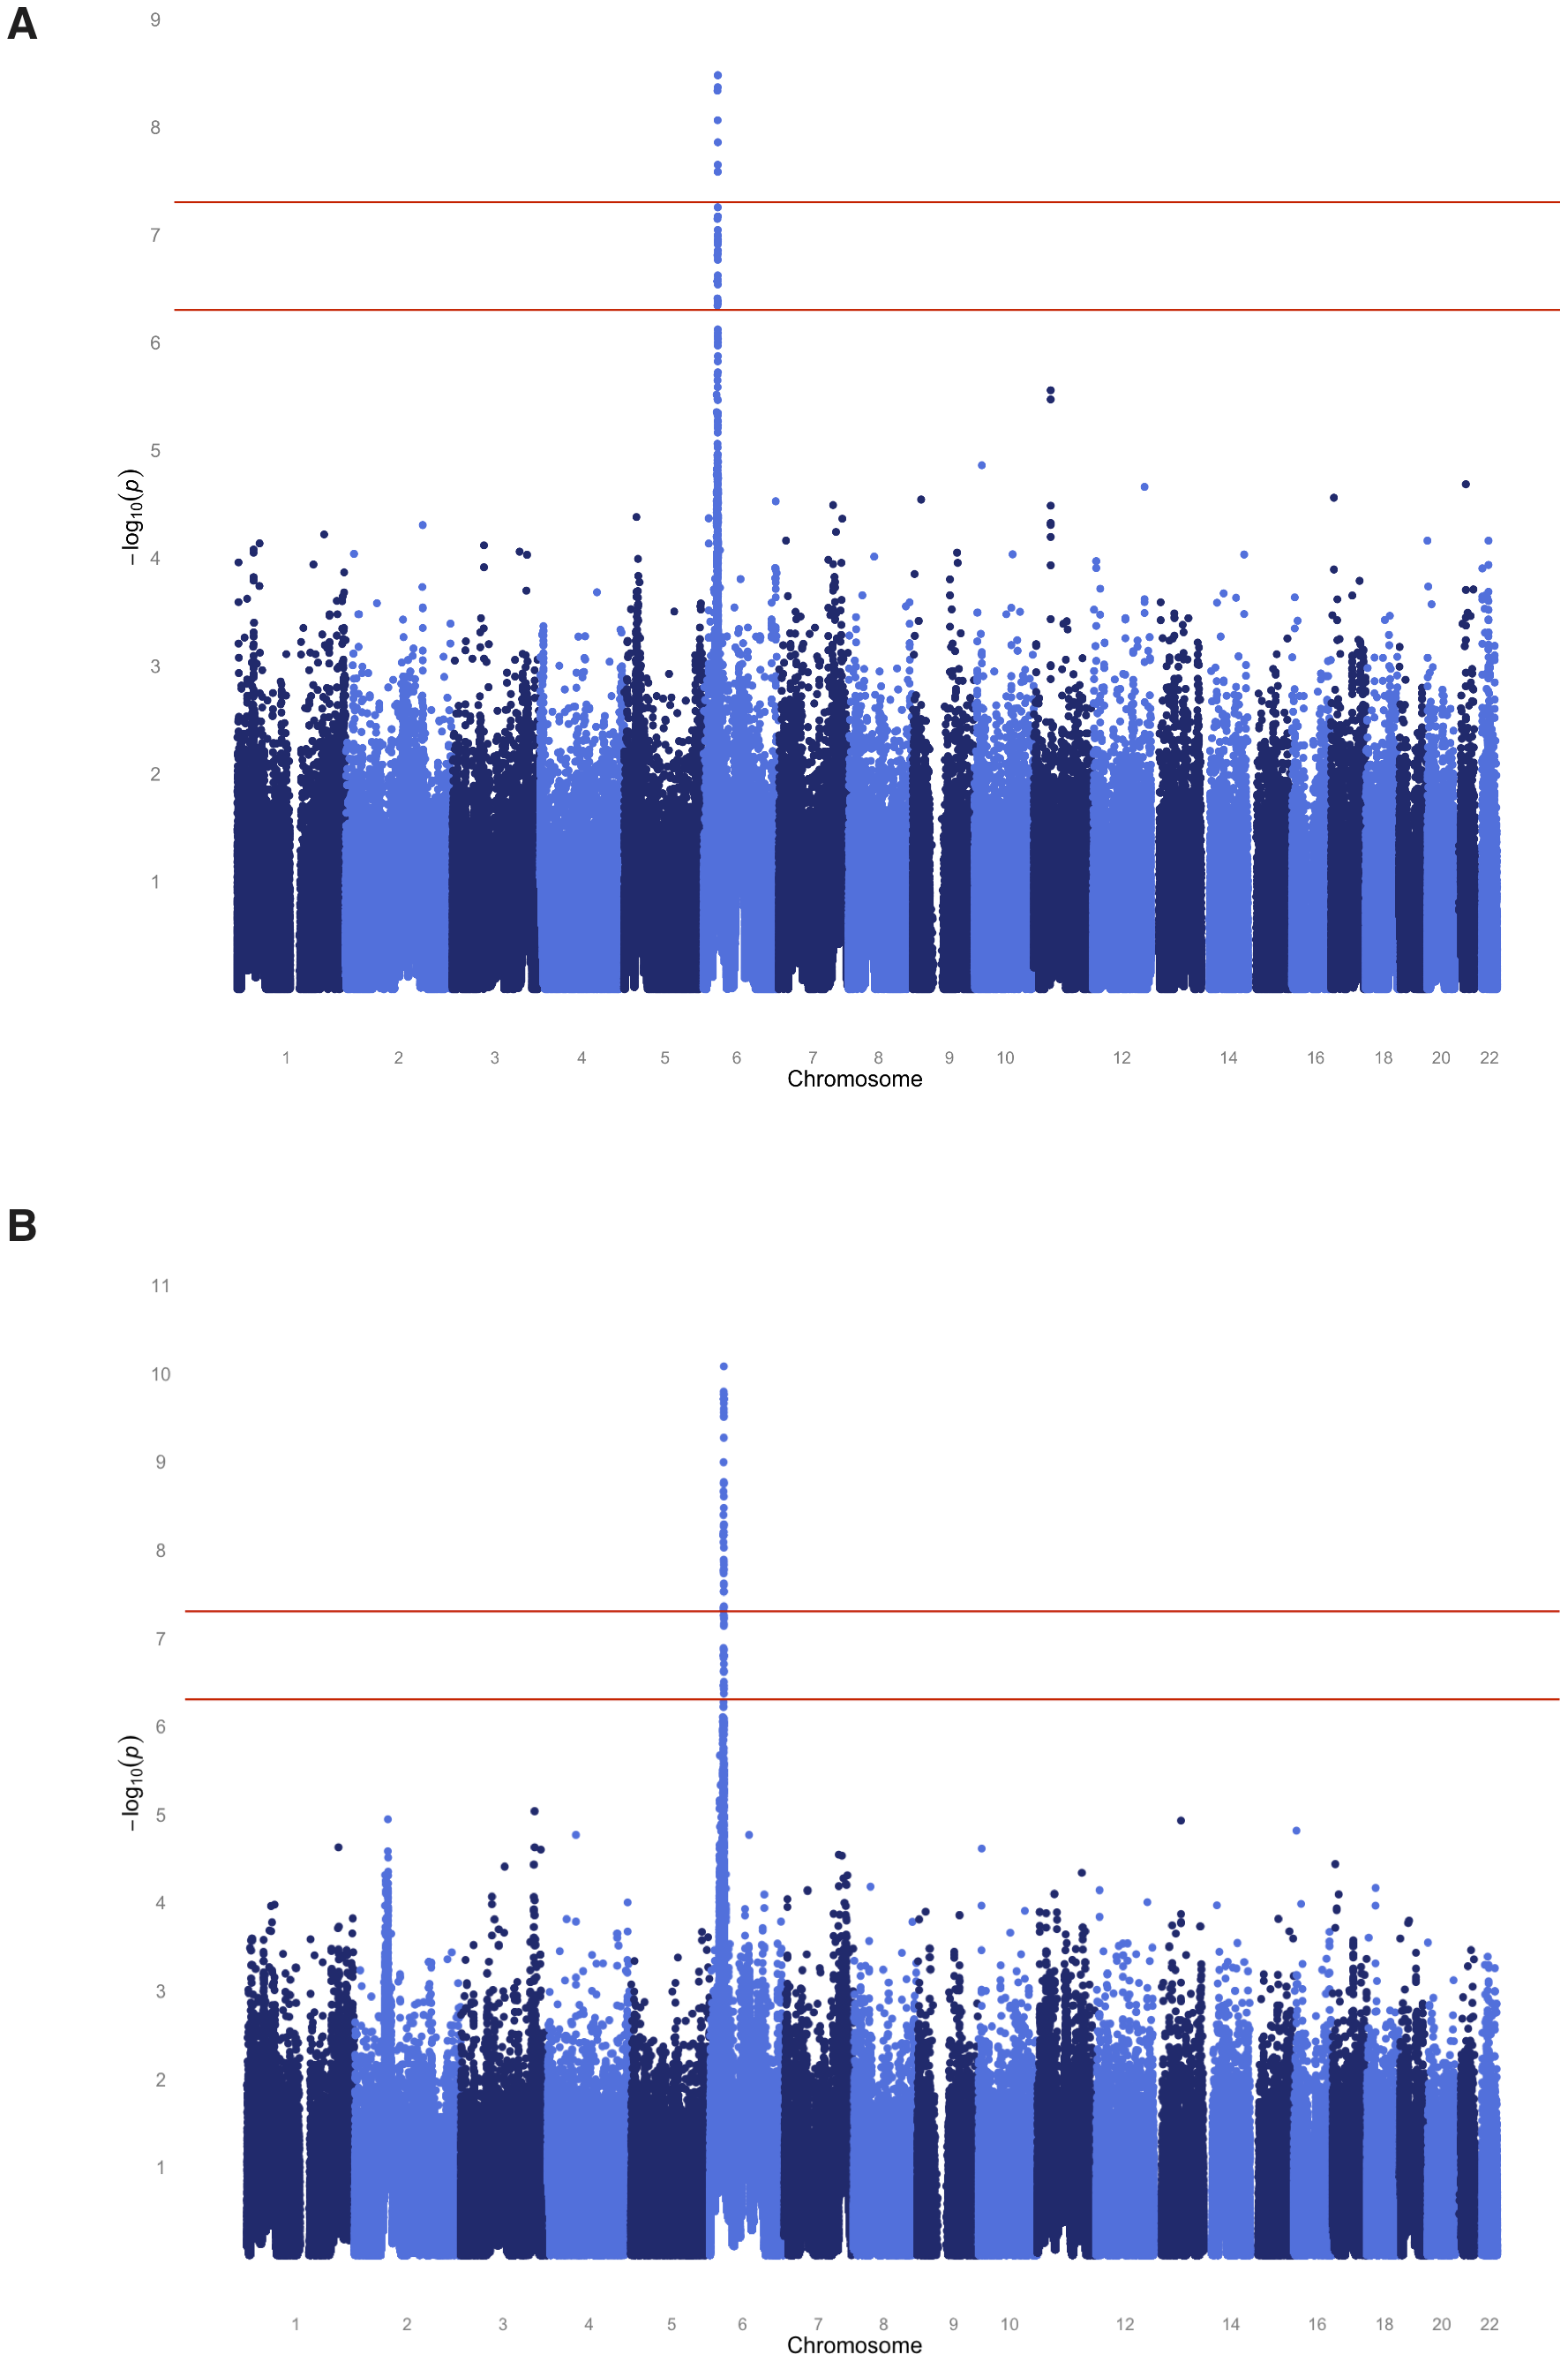 Genome-wide joint linkage and association analysis results for EBNA-1 antibody traits for SAFHS.